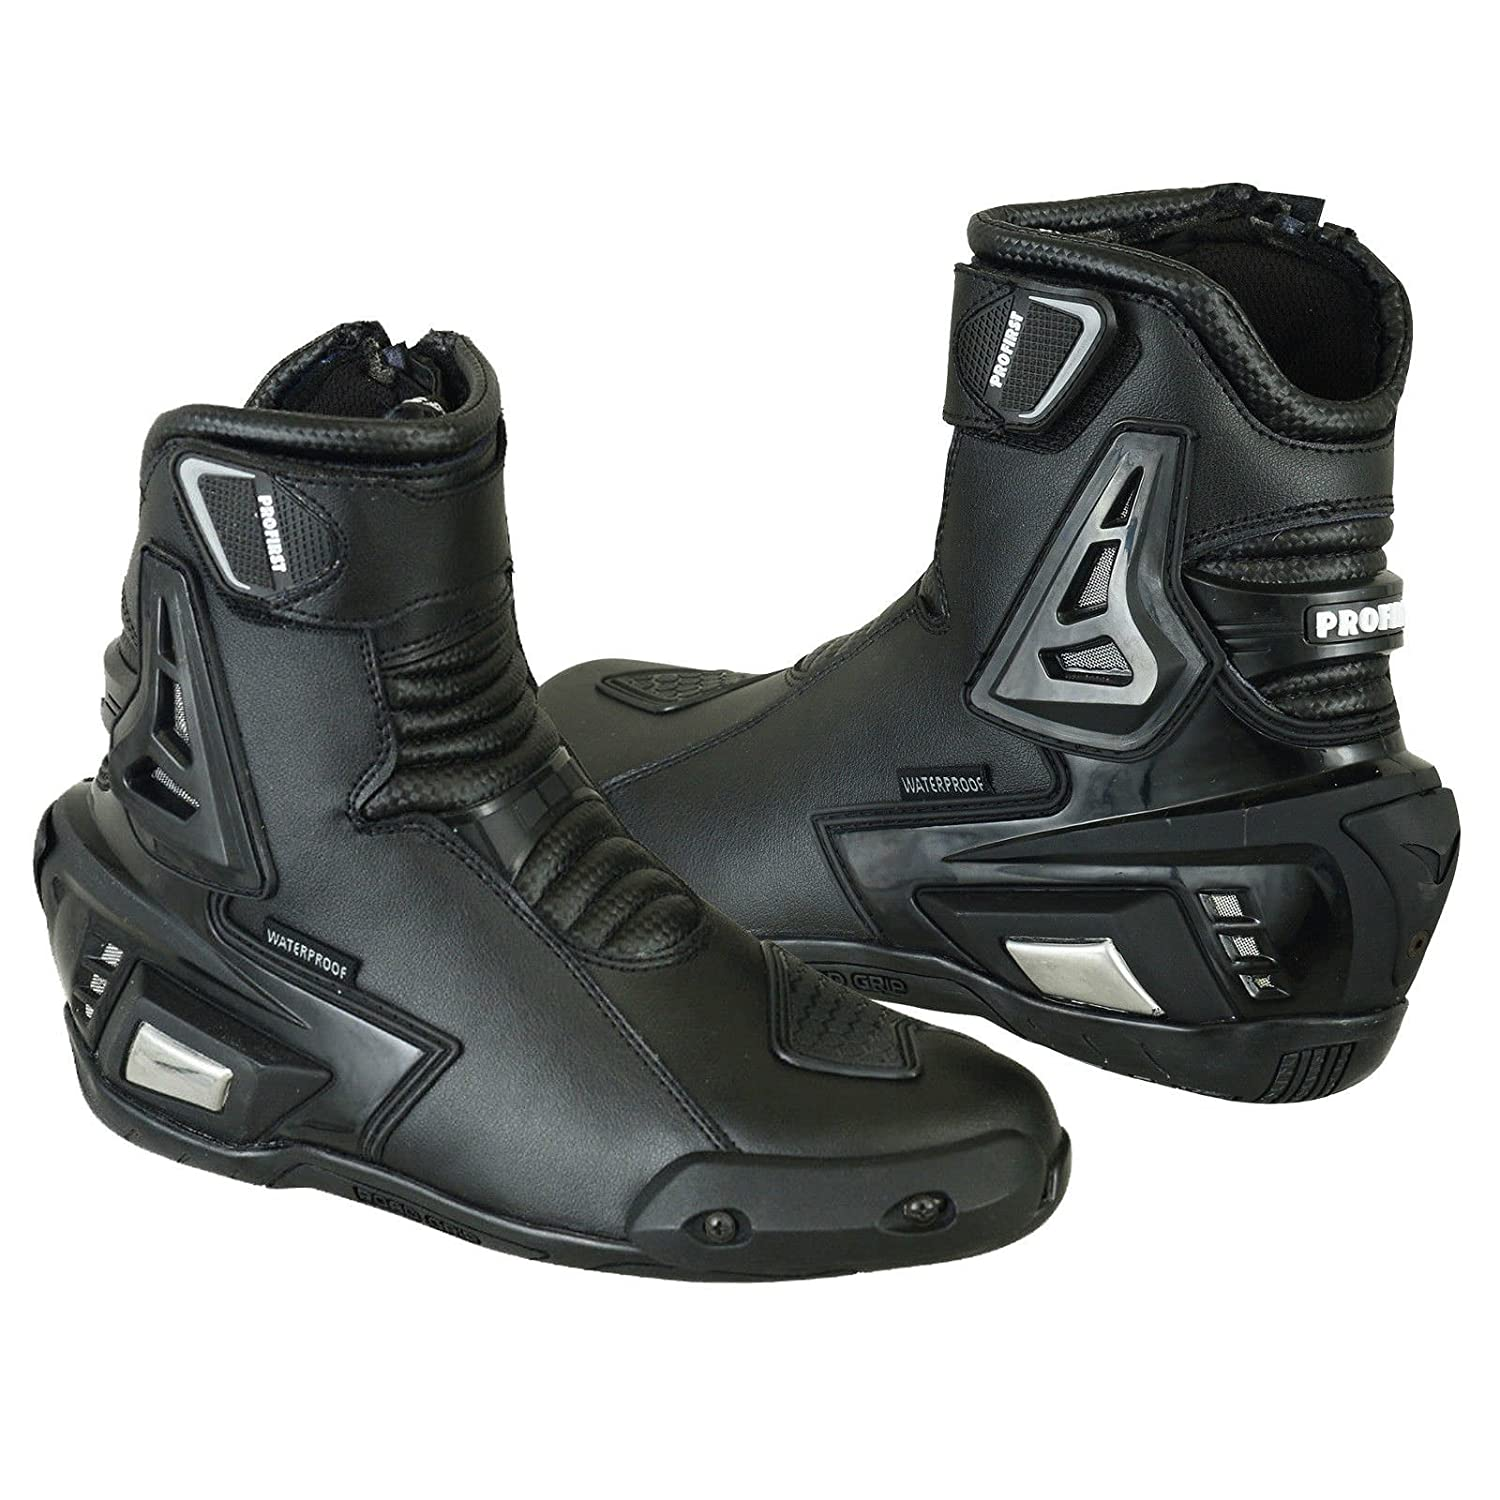 Profirst Global Motorbike Boots New Motorcycle Racing Rider Shoes Waterproof Touring for Men Boys 8 EU 42 Black